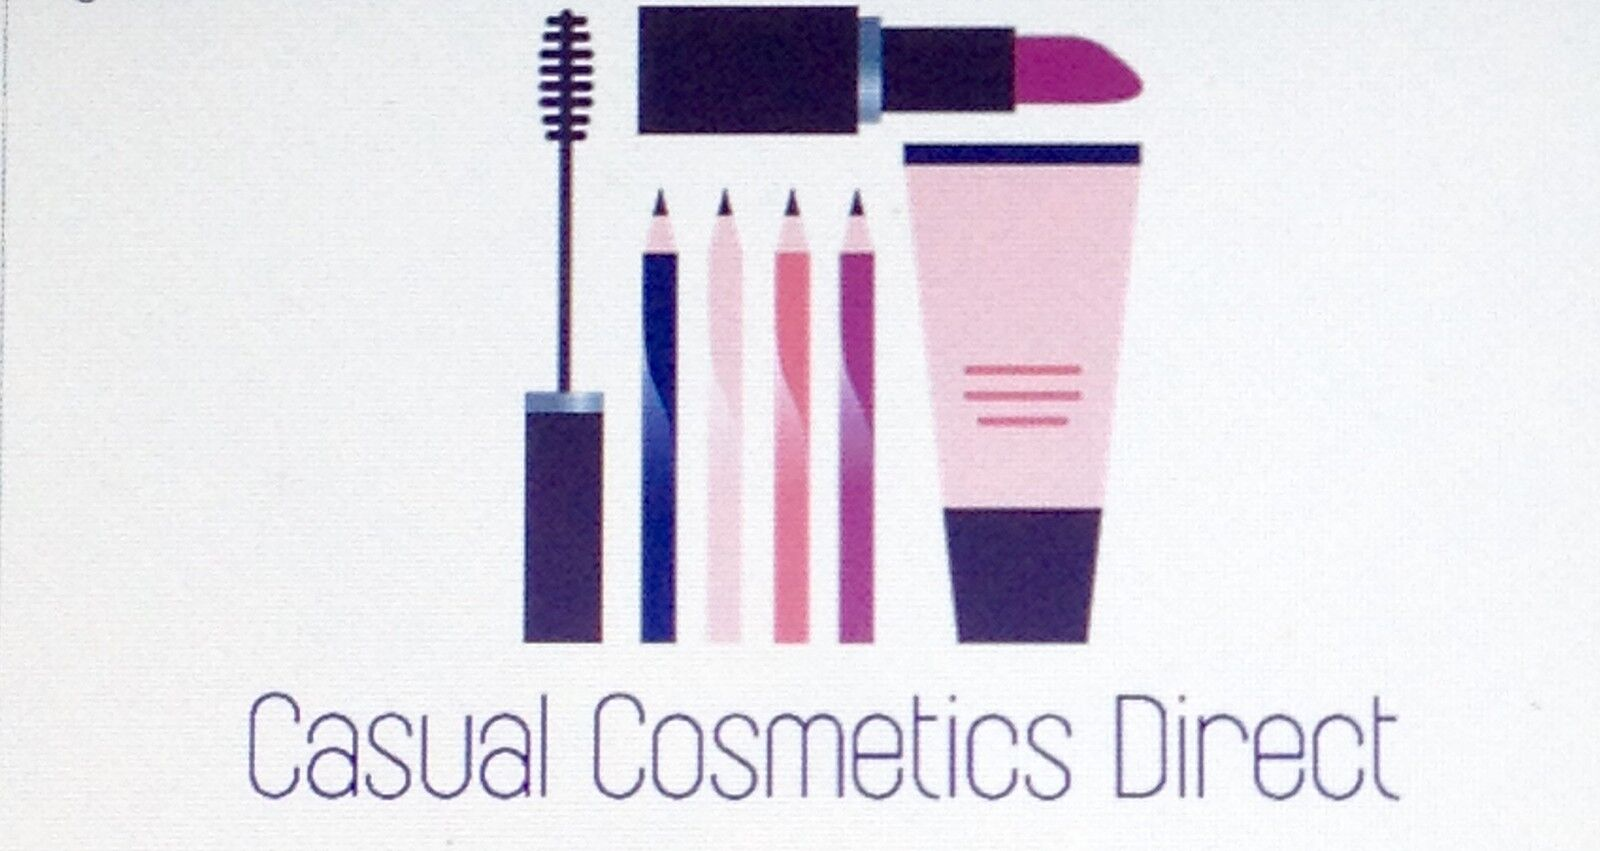 Casual Cosmetics Direct